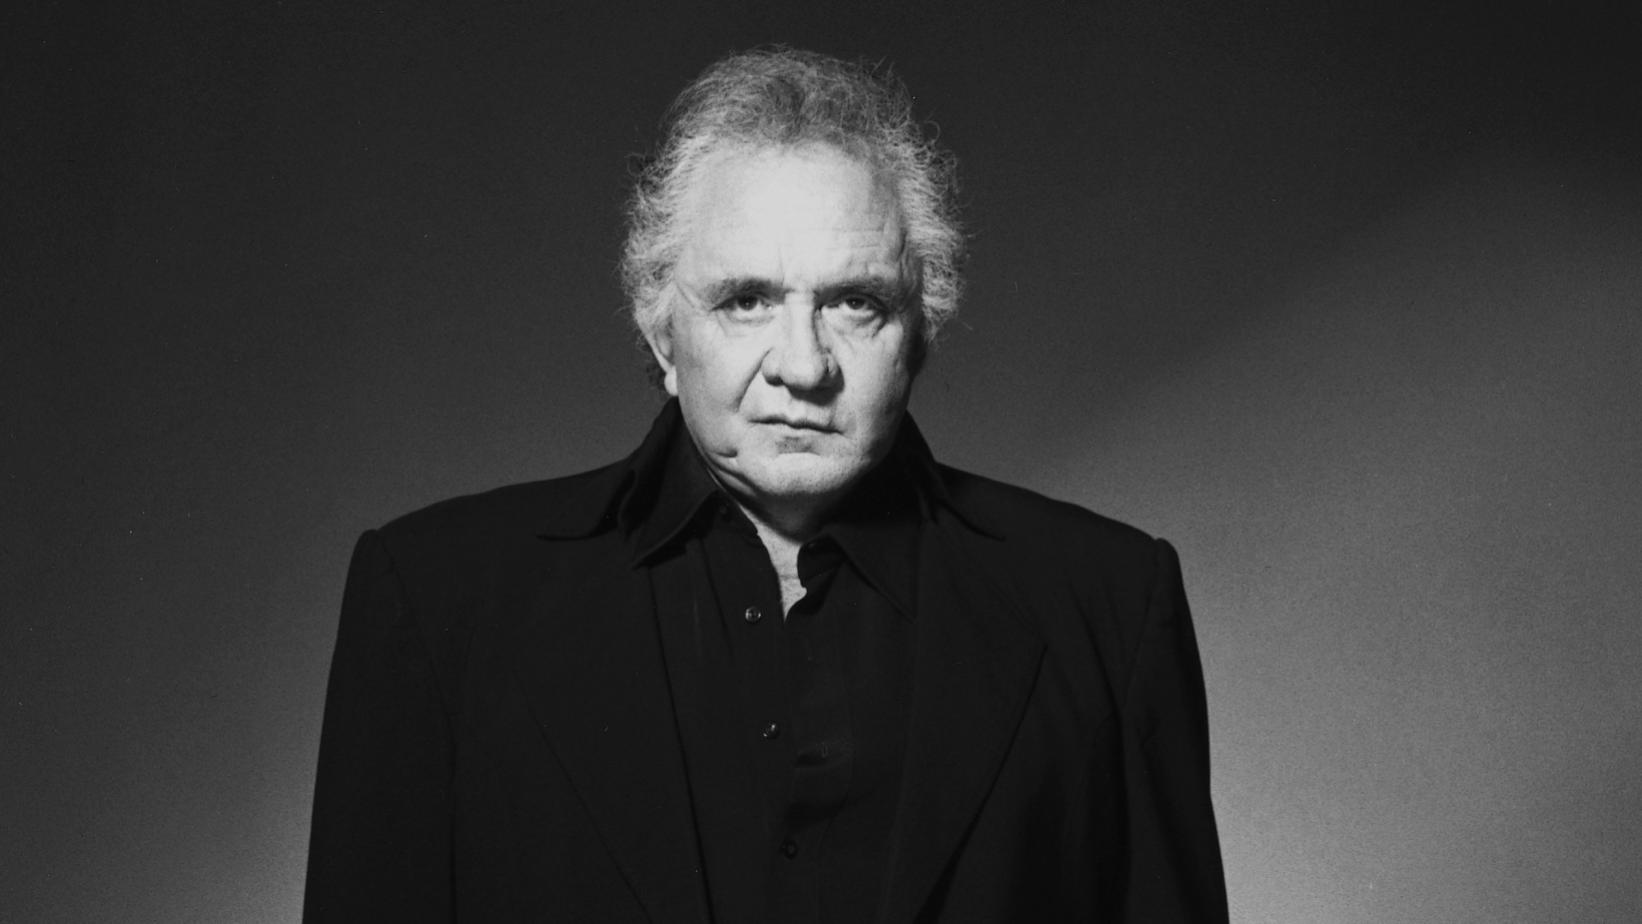 portrait johnny cash